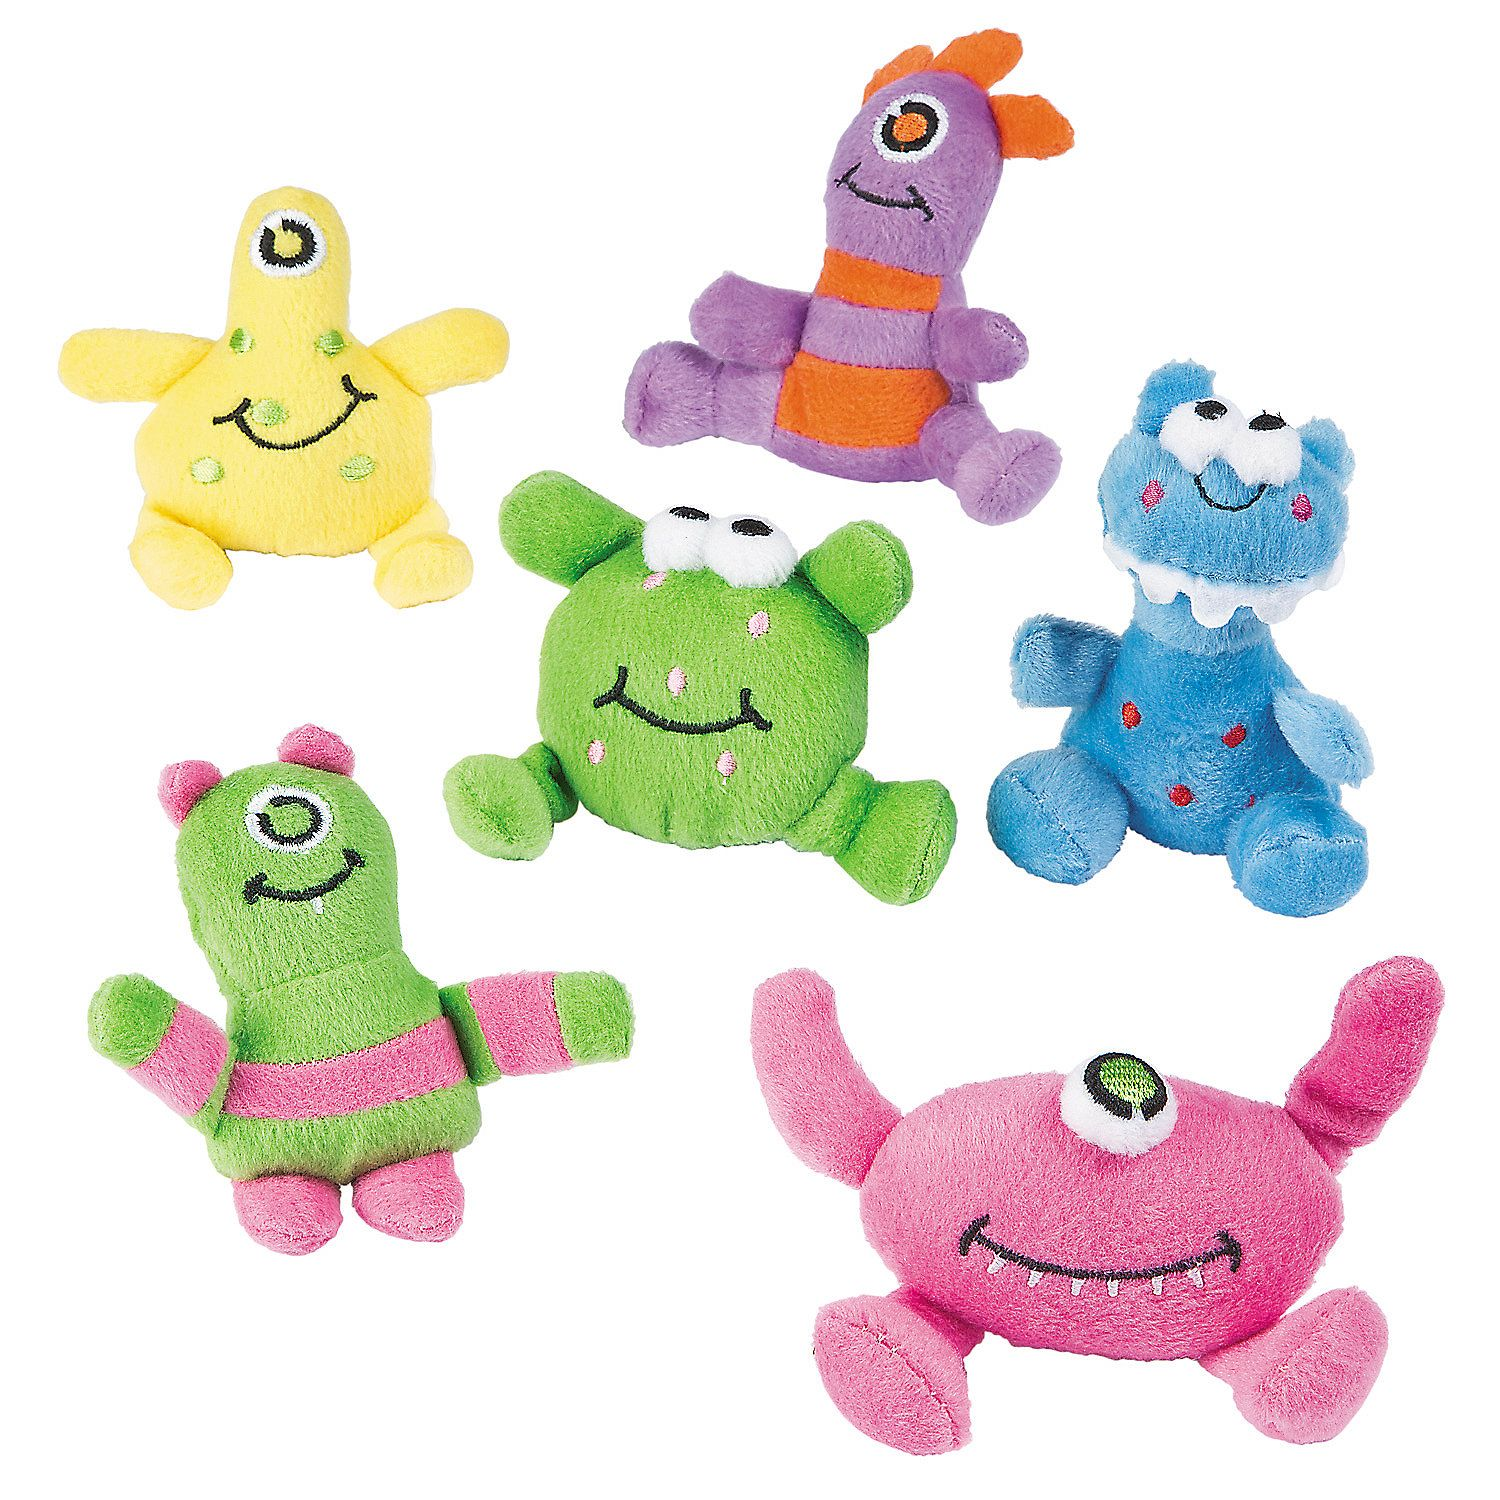 Plush Monsters Cheap toys for kids, Monster 1st